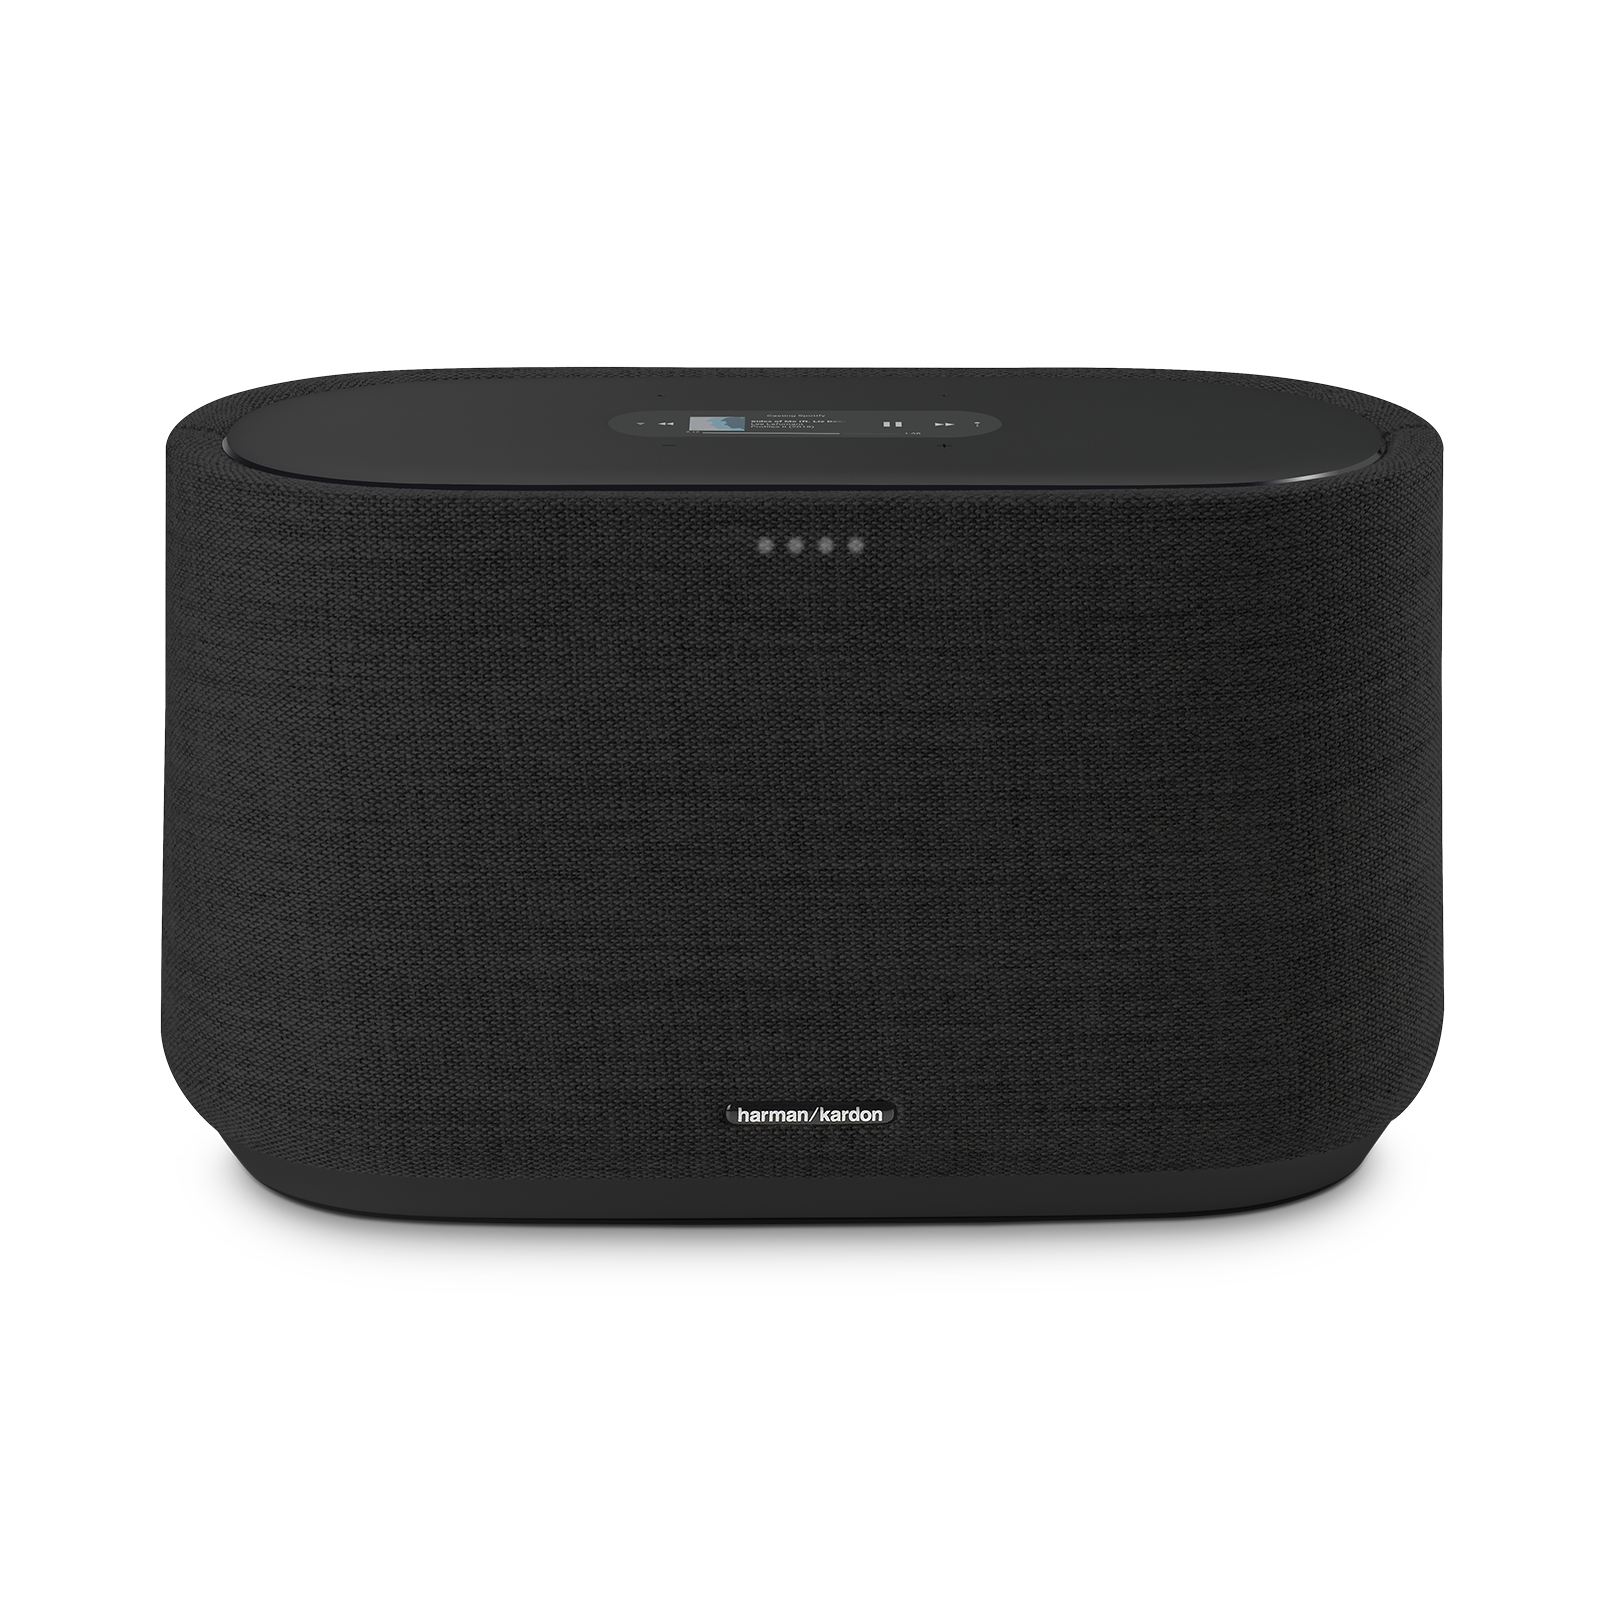 Harman Kardon Citation 300 - Black - The medium-size smart home speaker with award winning design - Front